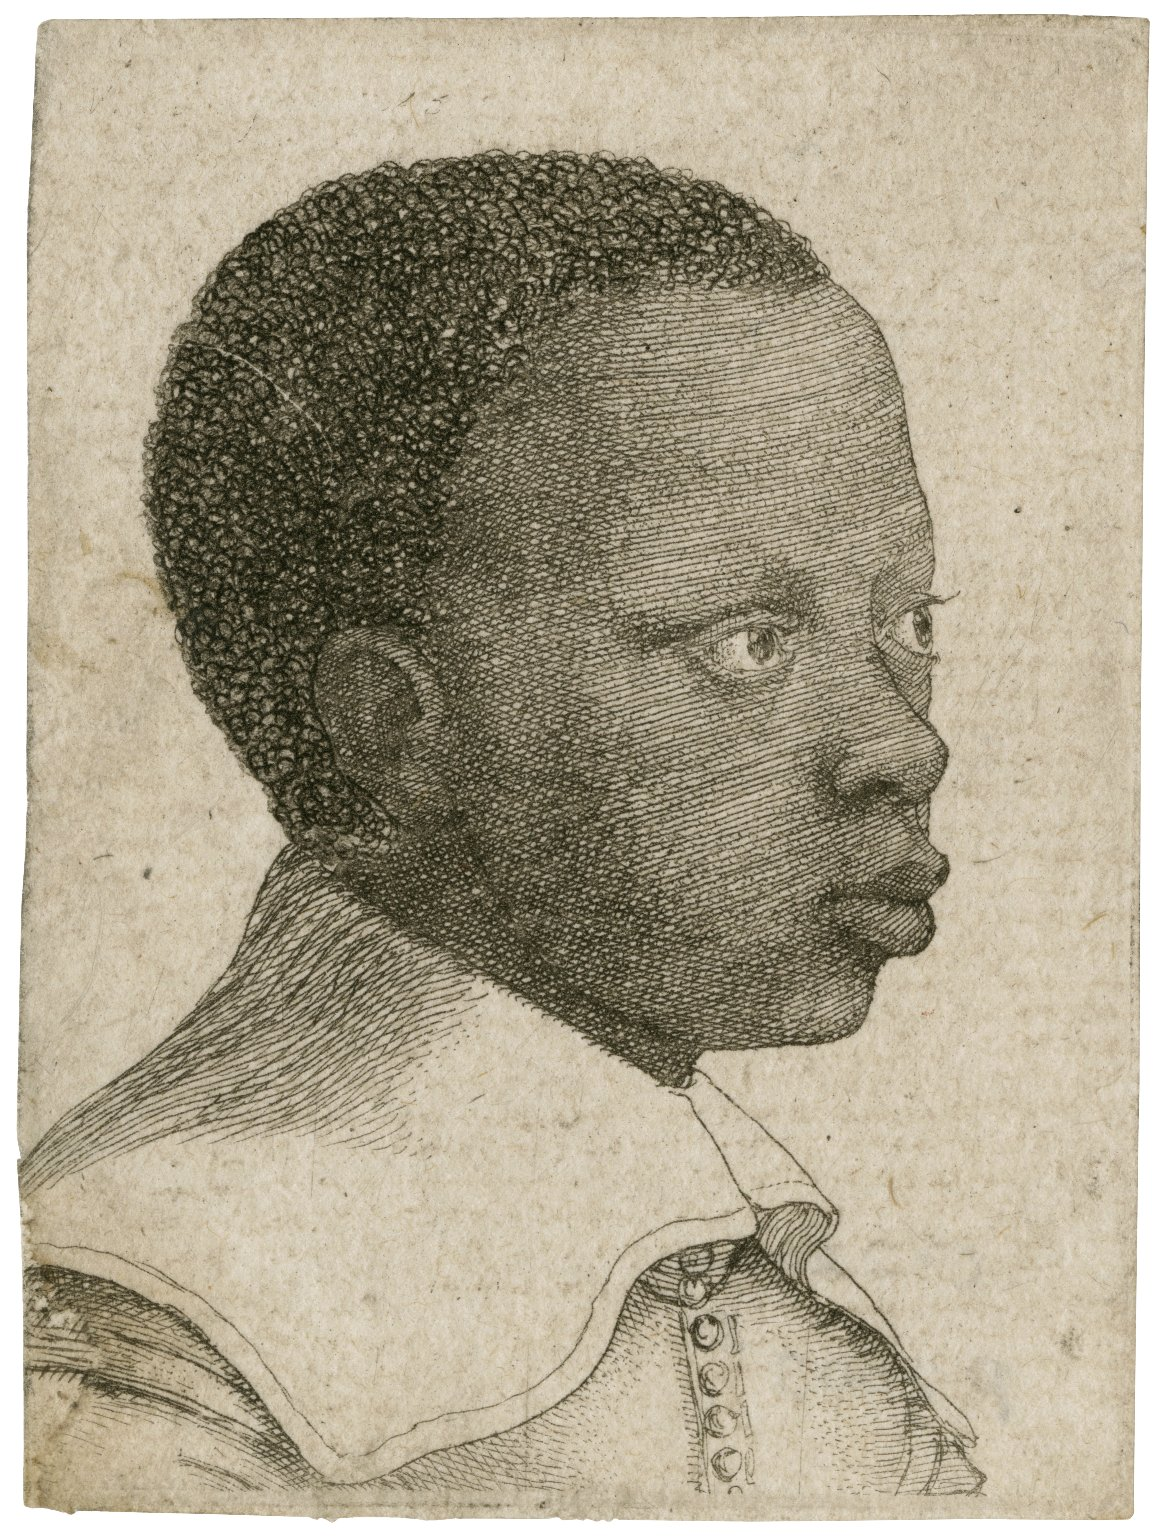 [Head of a young Black boy in profile to right]